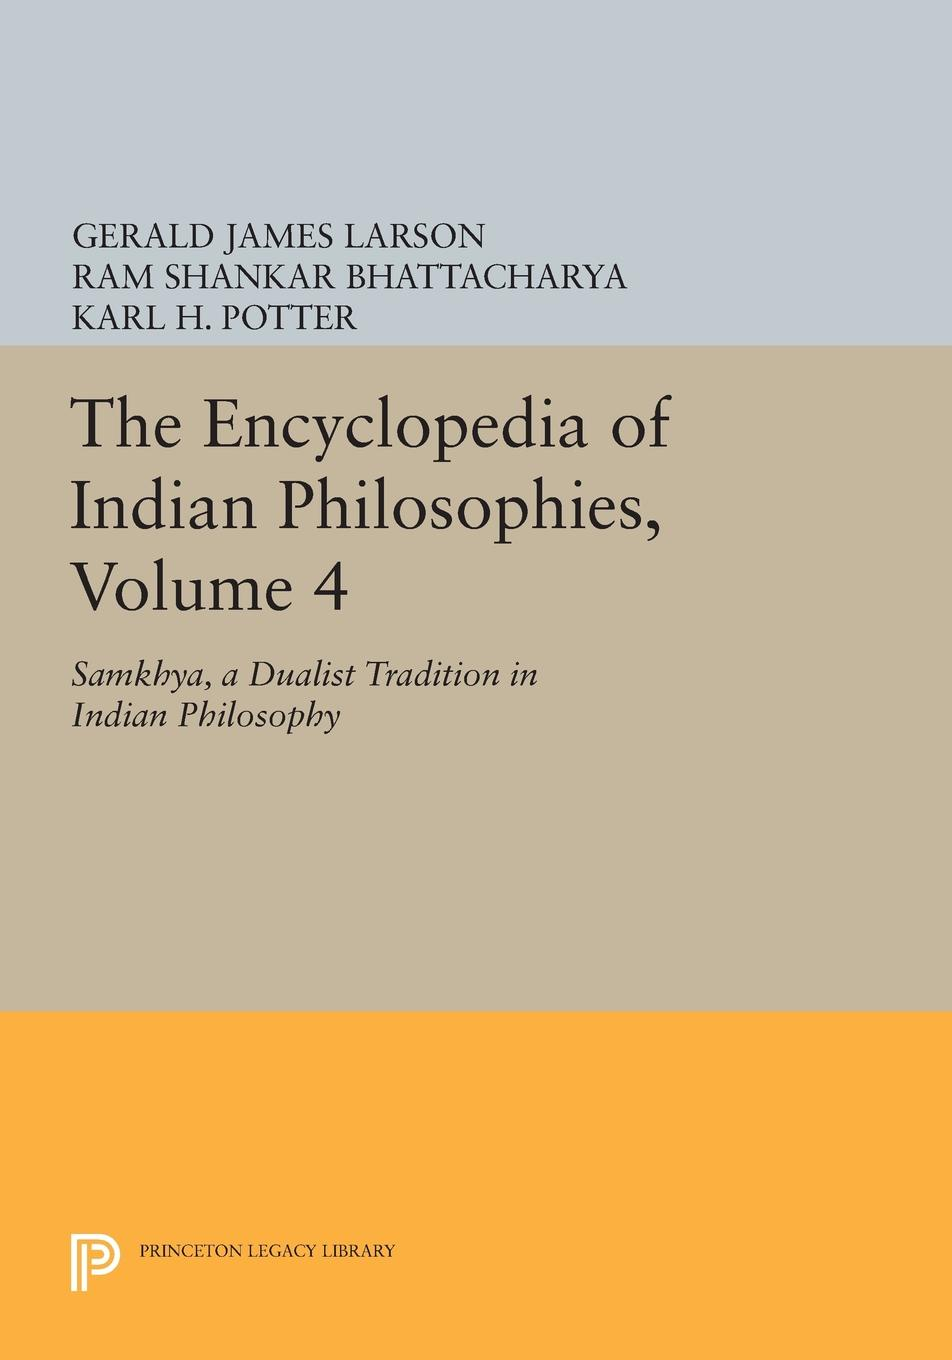 Gerald James Larson, Ram Shankar Bhattacharya The Encyclopedia of Indian Philosophies, Volume 4. Samkhya, A Dualist Tradition in Indian Philosophy samkhya philosophy a generic view